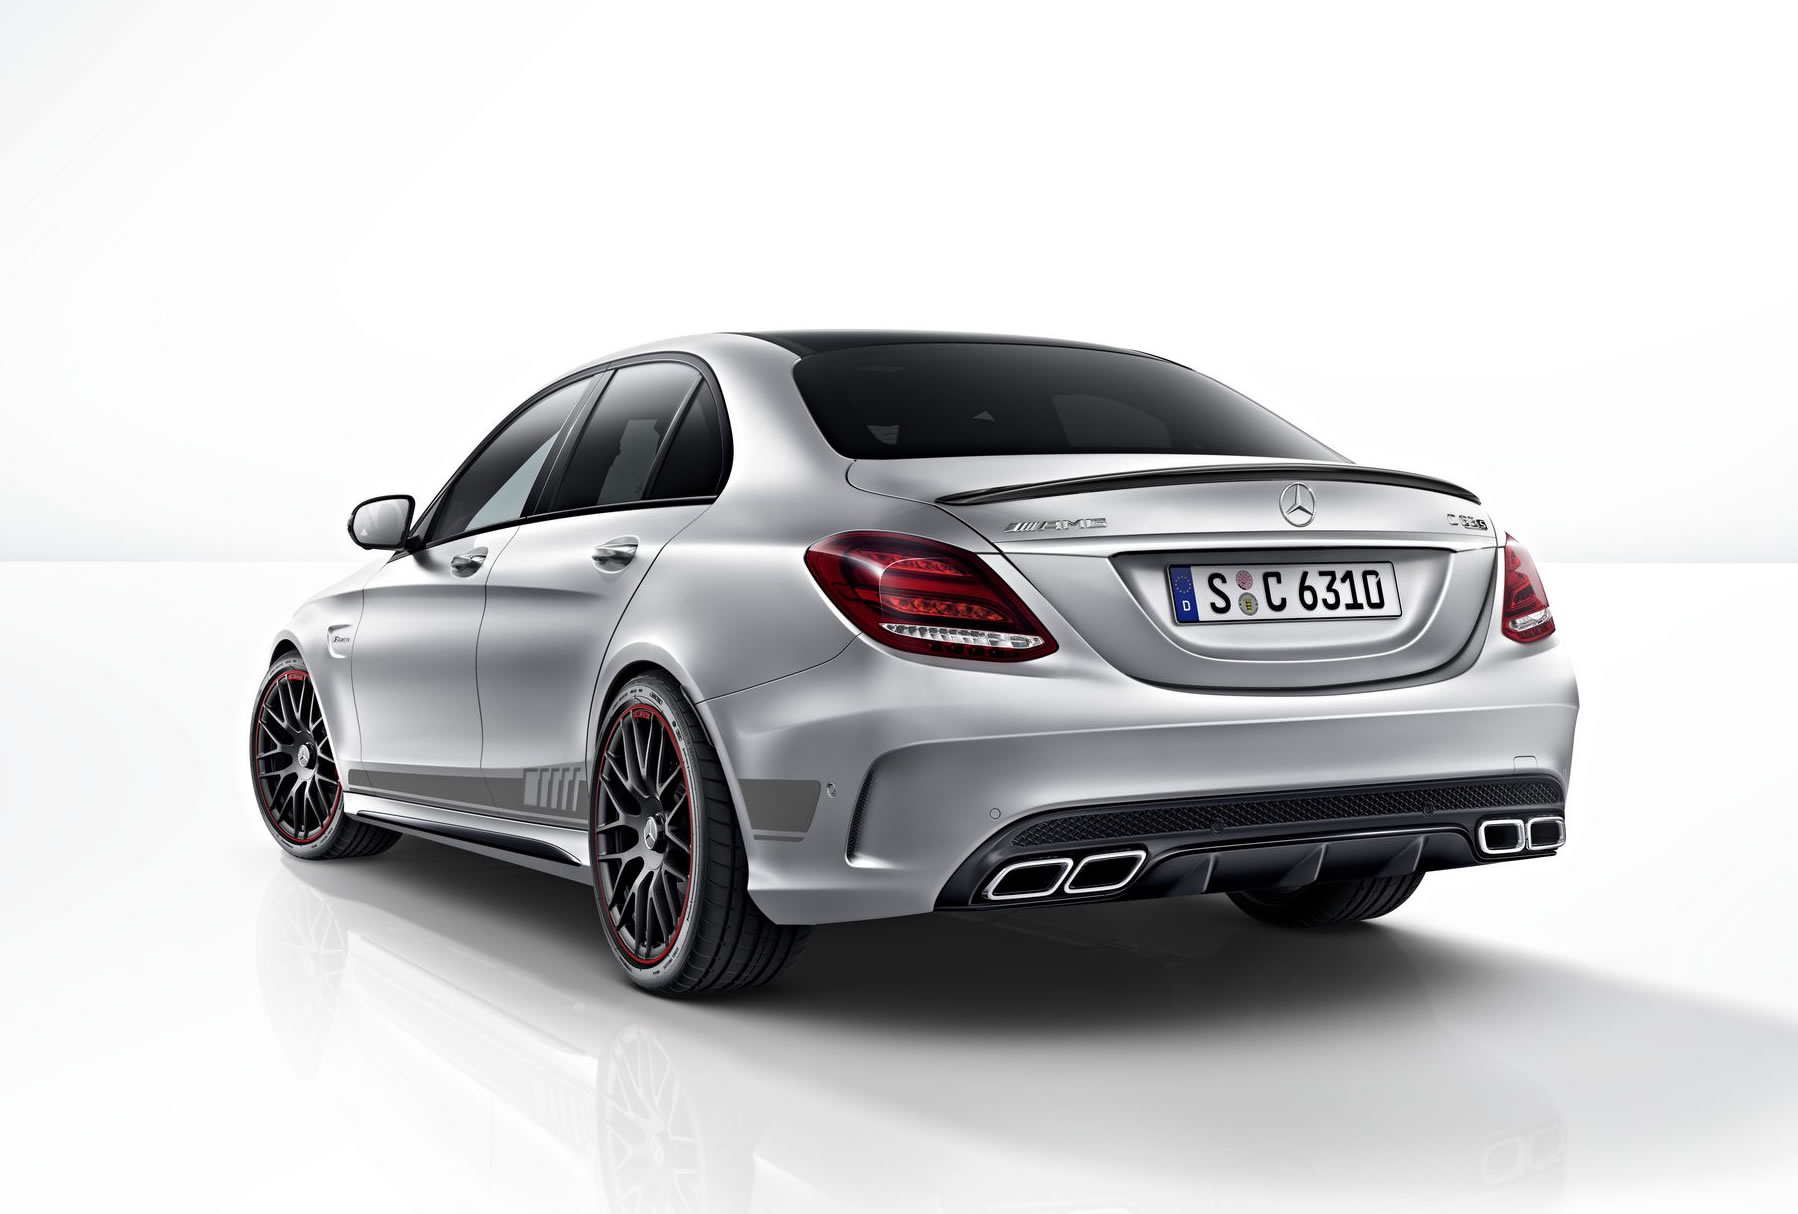 2015 mercedes benz amg c63 s edition 1 photos specs and review rs. Black Bedroom Furniture Sets. Home Design Ideas